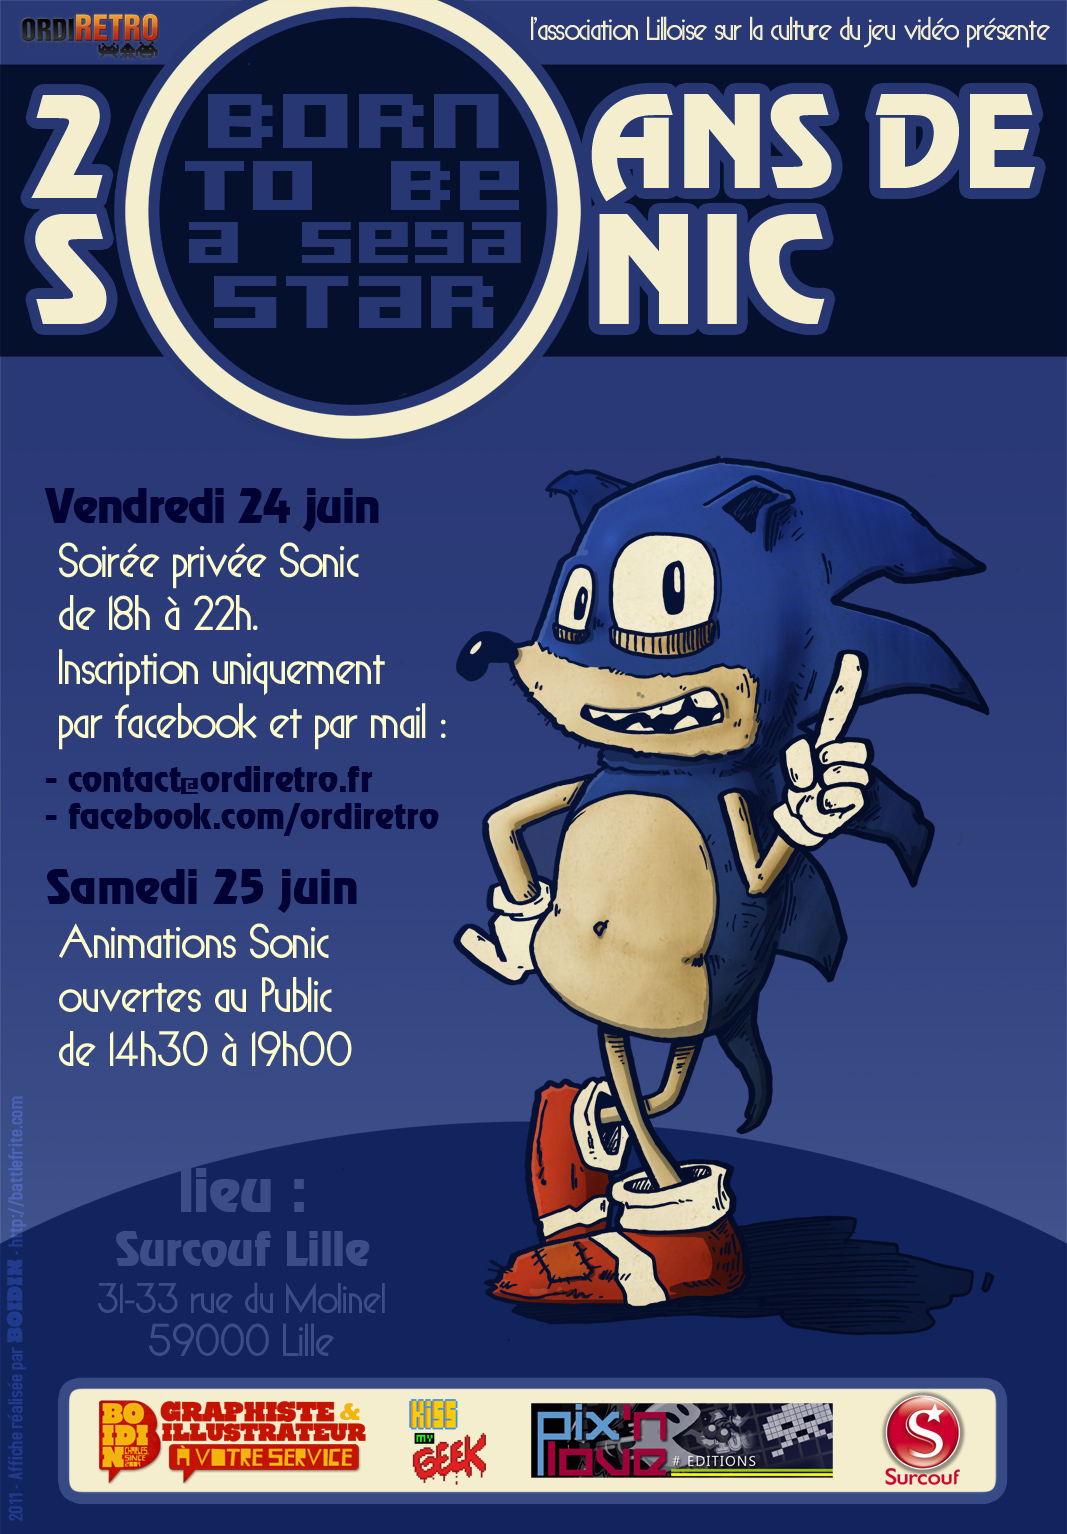 sonic f te ses 20 ans lille ce weekend. Black Bedroom Furniture Sets. Home Design Ideas